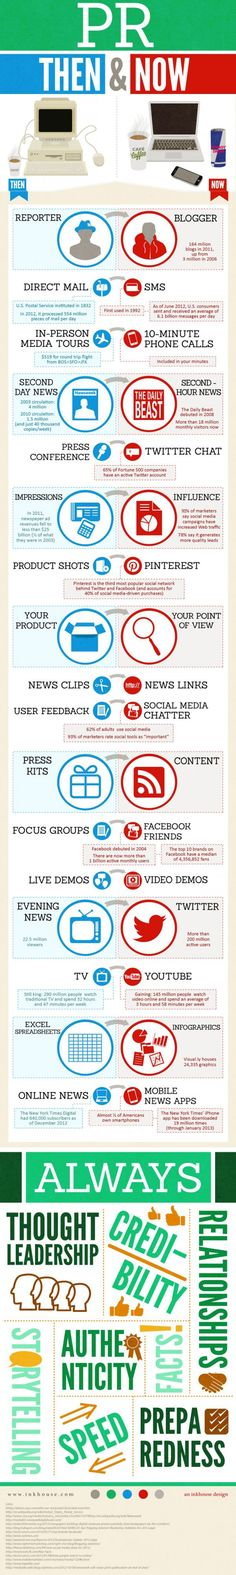 Media & PR: Then & Now. Great infographic detailing how digital media has shaped the public relations field.Social Media & PR: Then & Now. Great infographic detailing how digital media has shaped the public relations field. Guerilla Marketing, Inbound Marketing, Marketing Digital, Marketing Trends, Marketing Online, Business Marketing, Content Marketing, Internet Marketing, Social Media Marketing